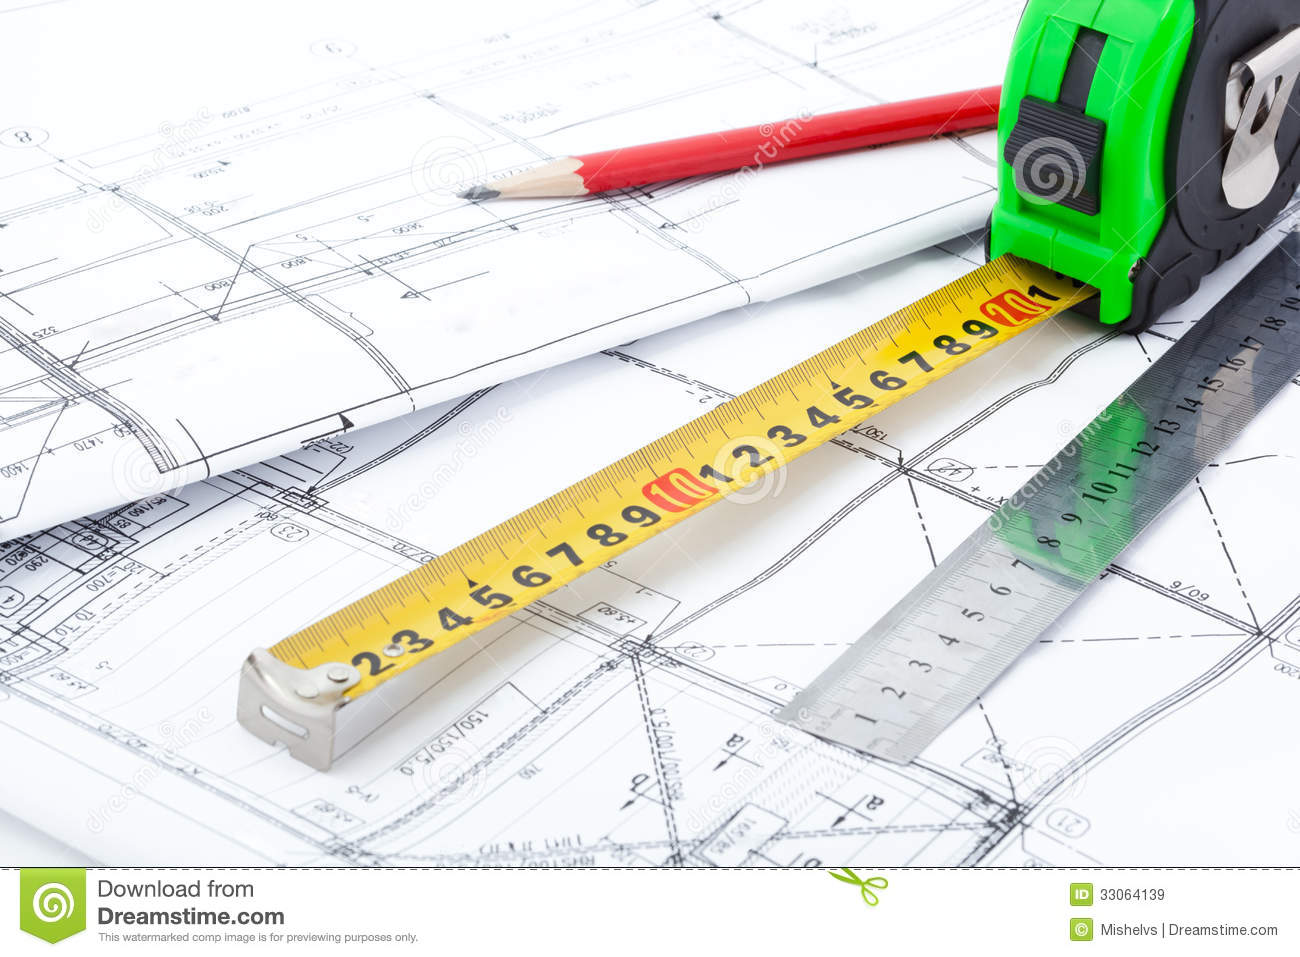 Architectural Drawings And Measurement Tools Stock Image - Image of ...